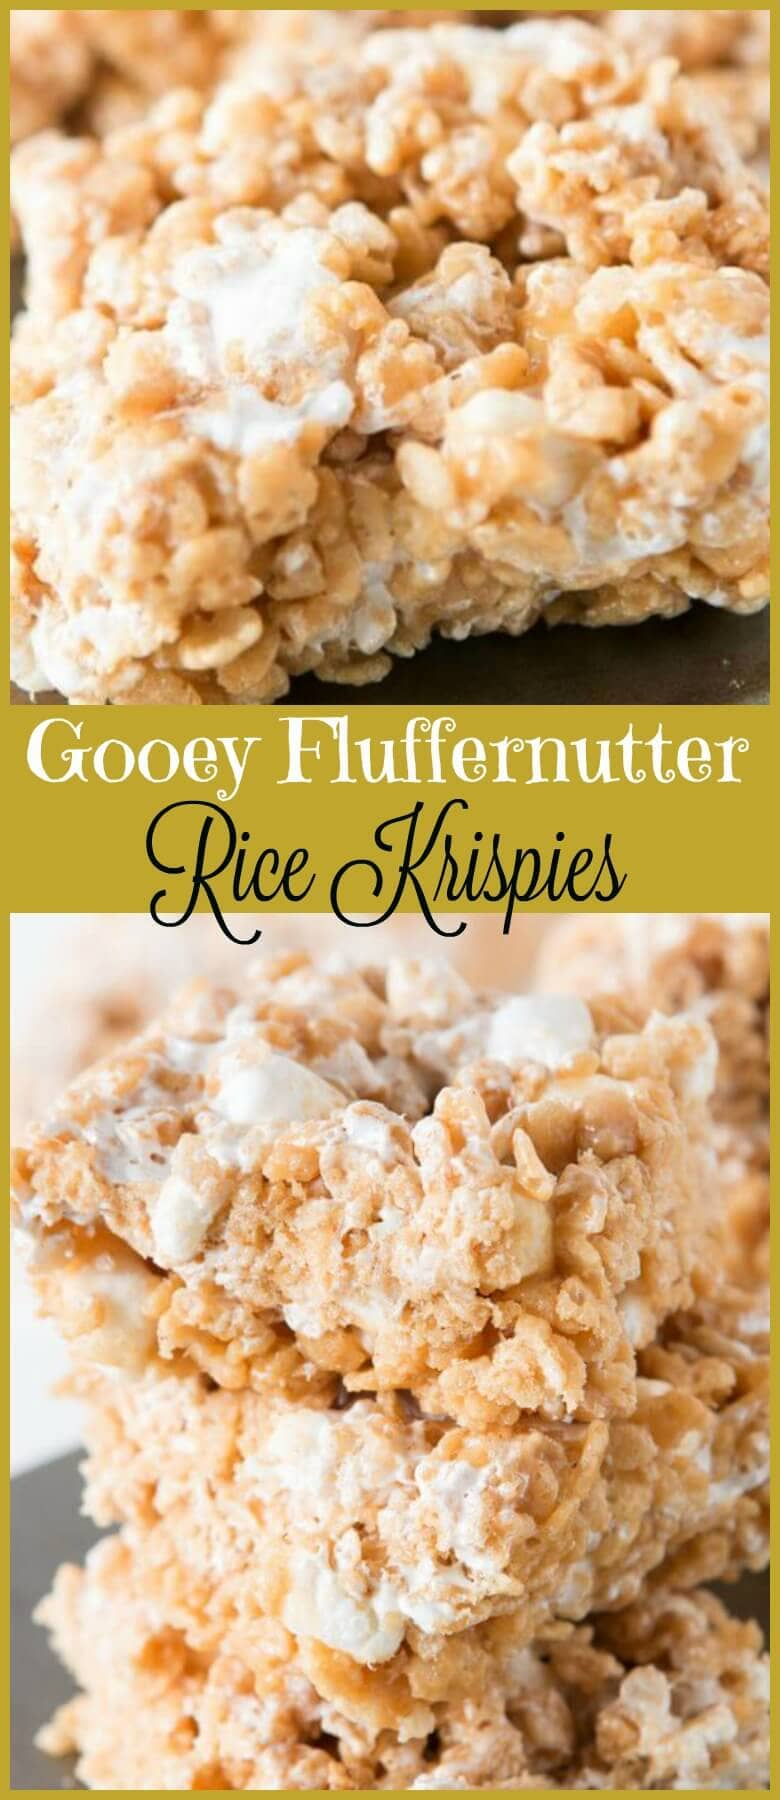 Gooey Fluffernutter Rice Krispies, oh yeah baby ohsweetbasil.com marshmallows, no-bake